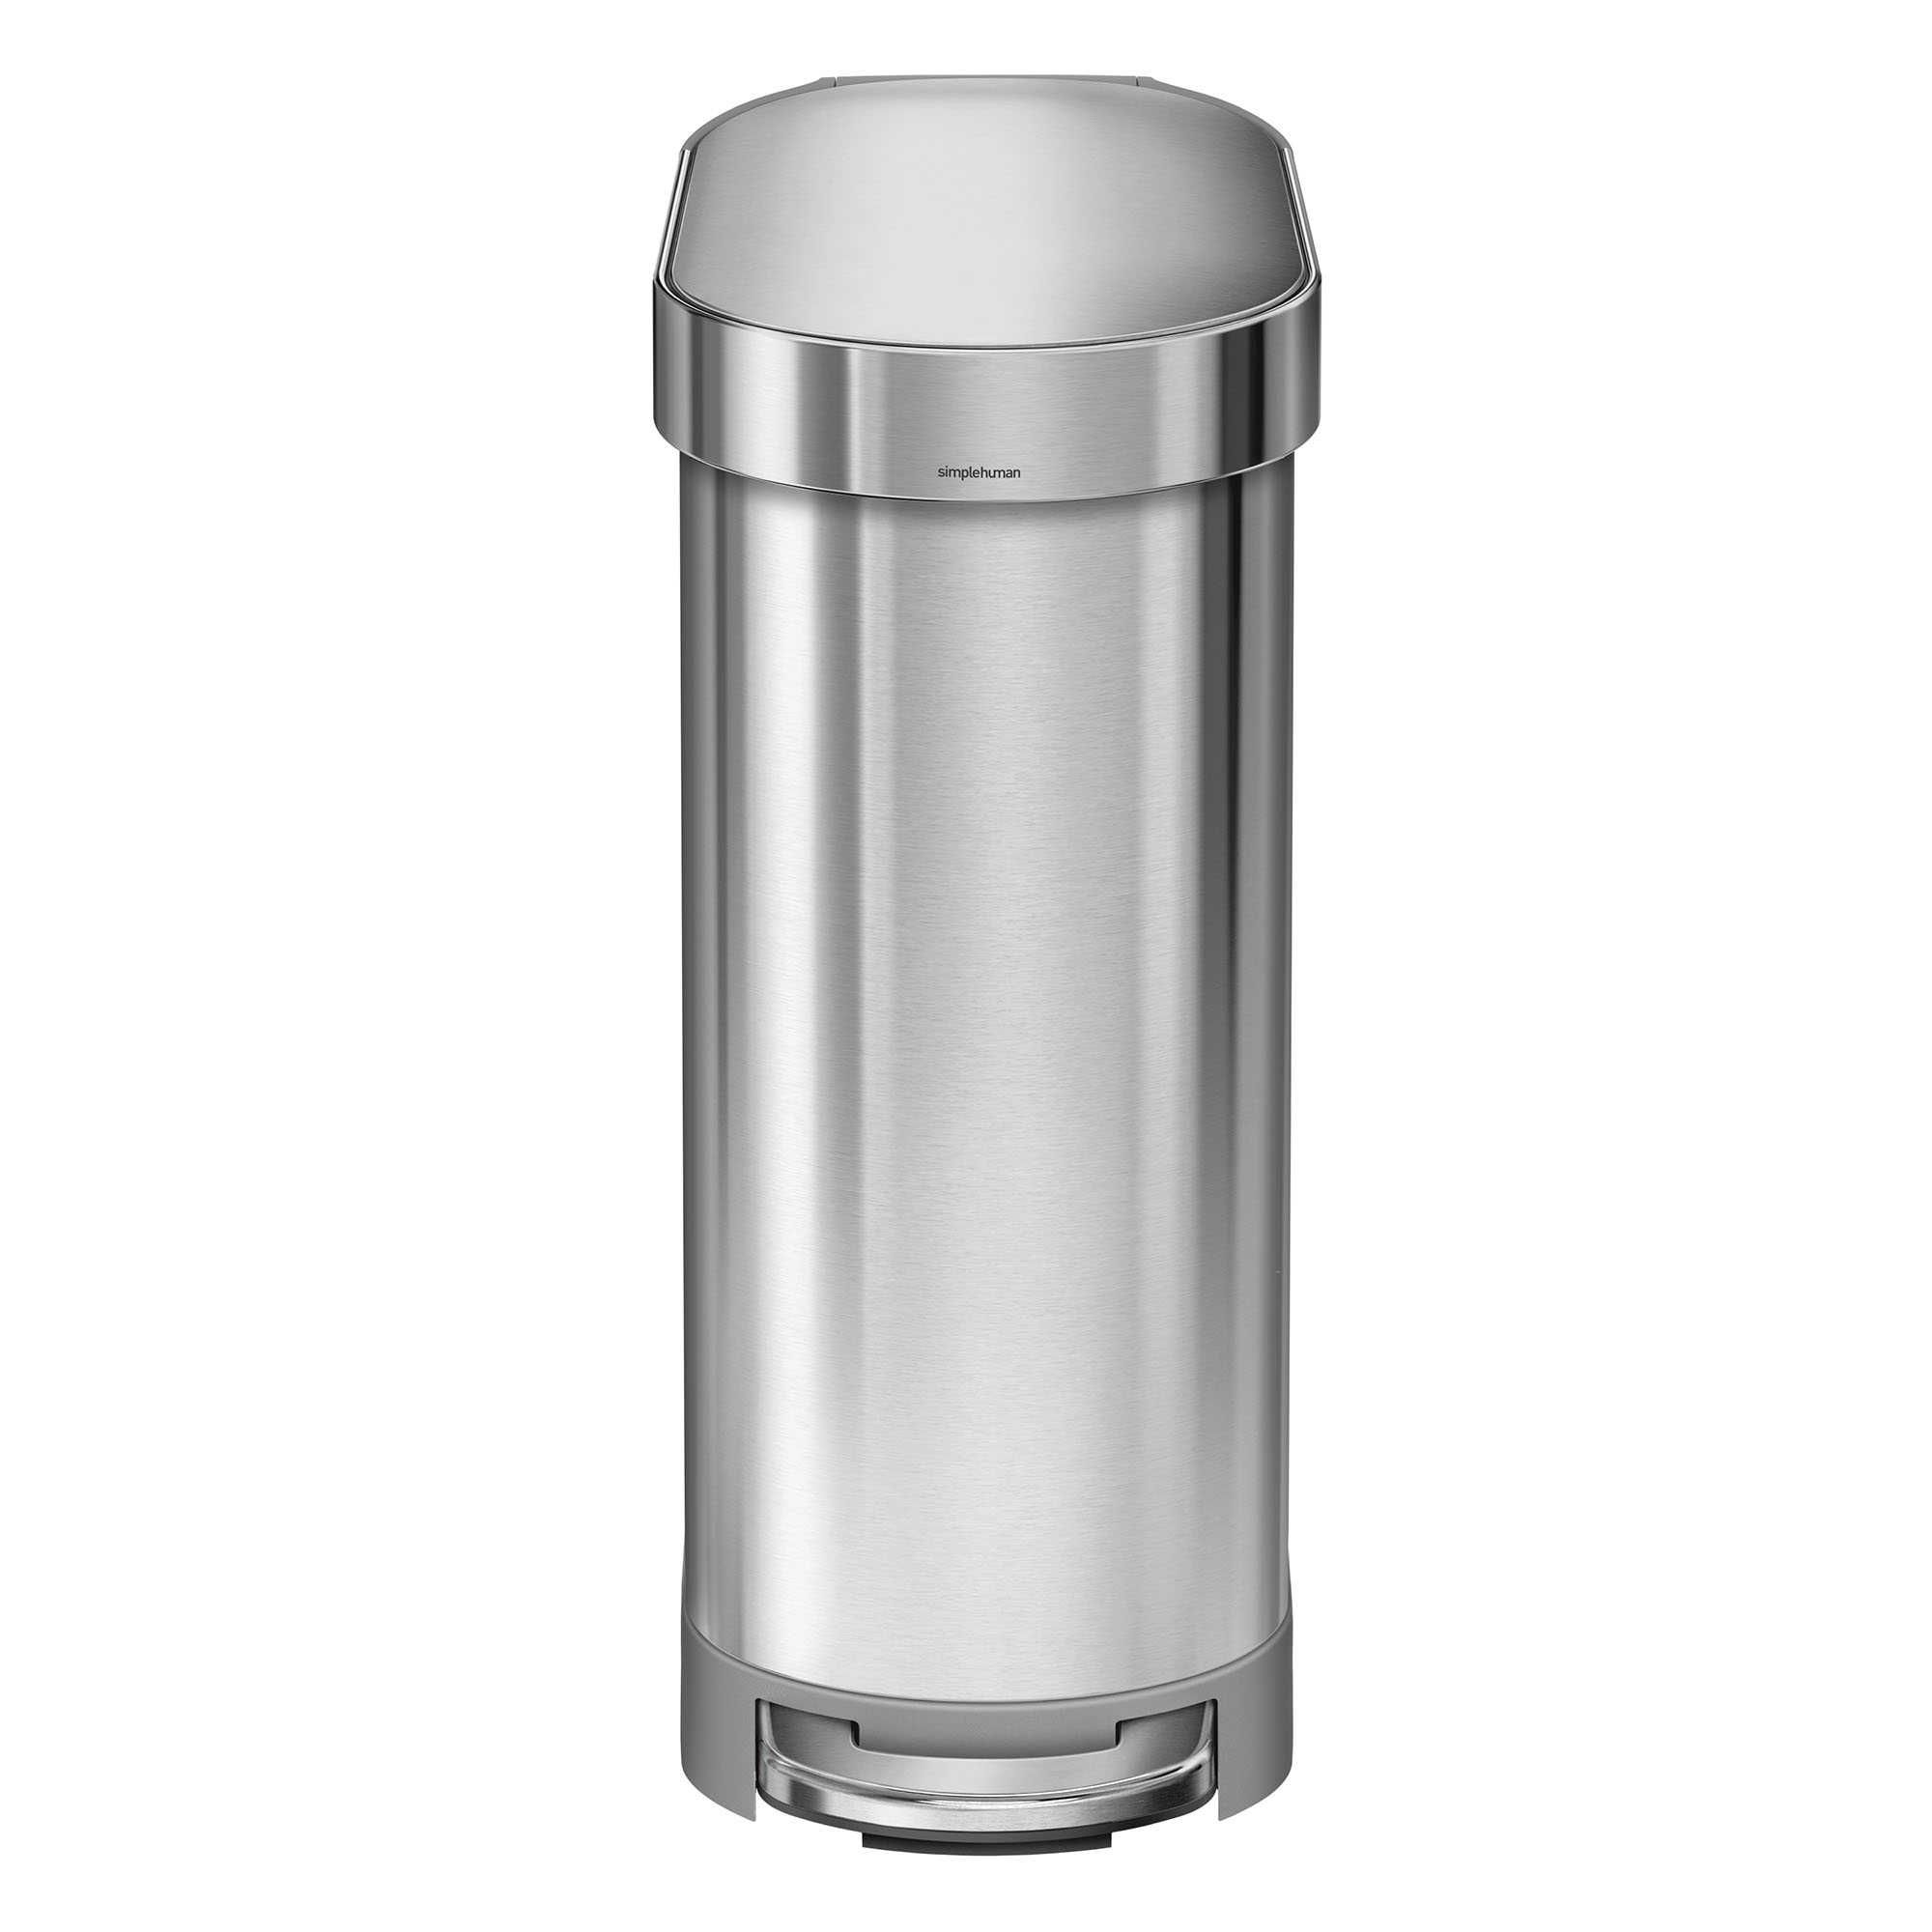 simplehuman® Slim 45-Liter Step-On Trash Can with Liner Rim ...